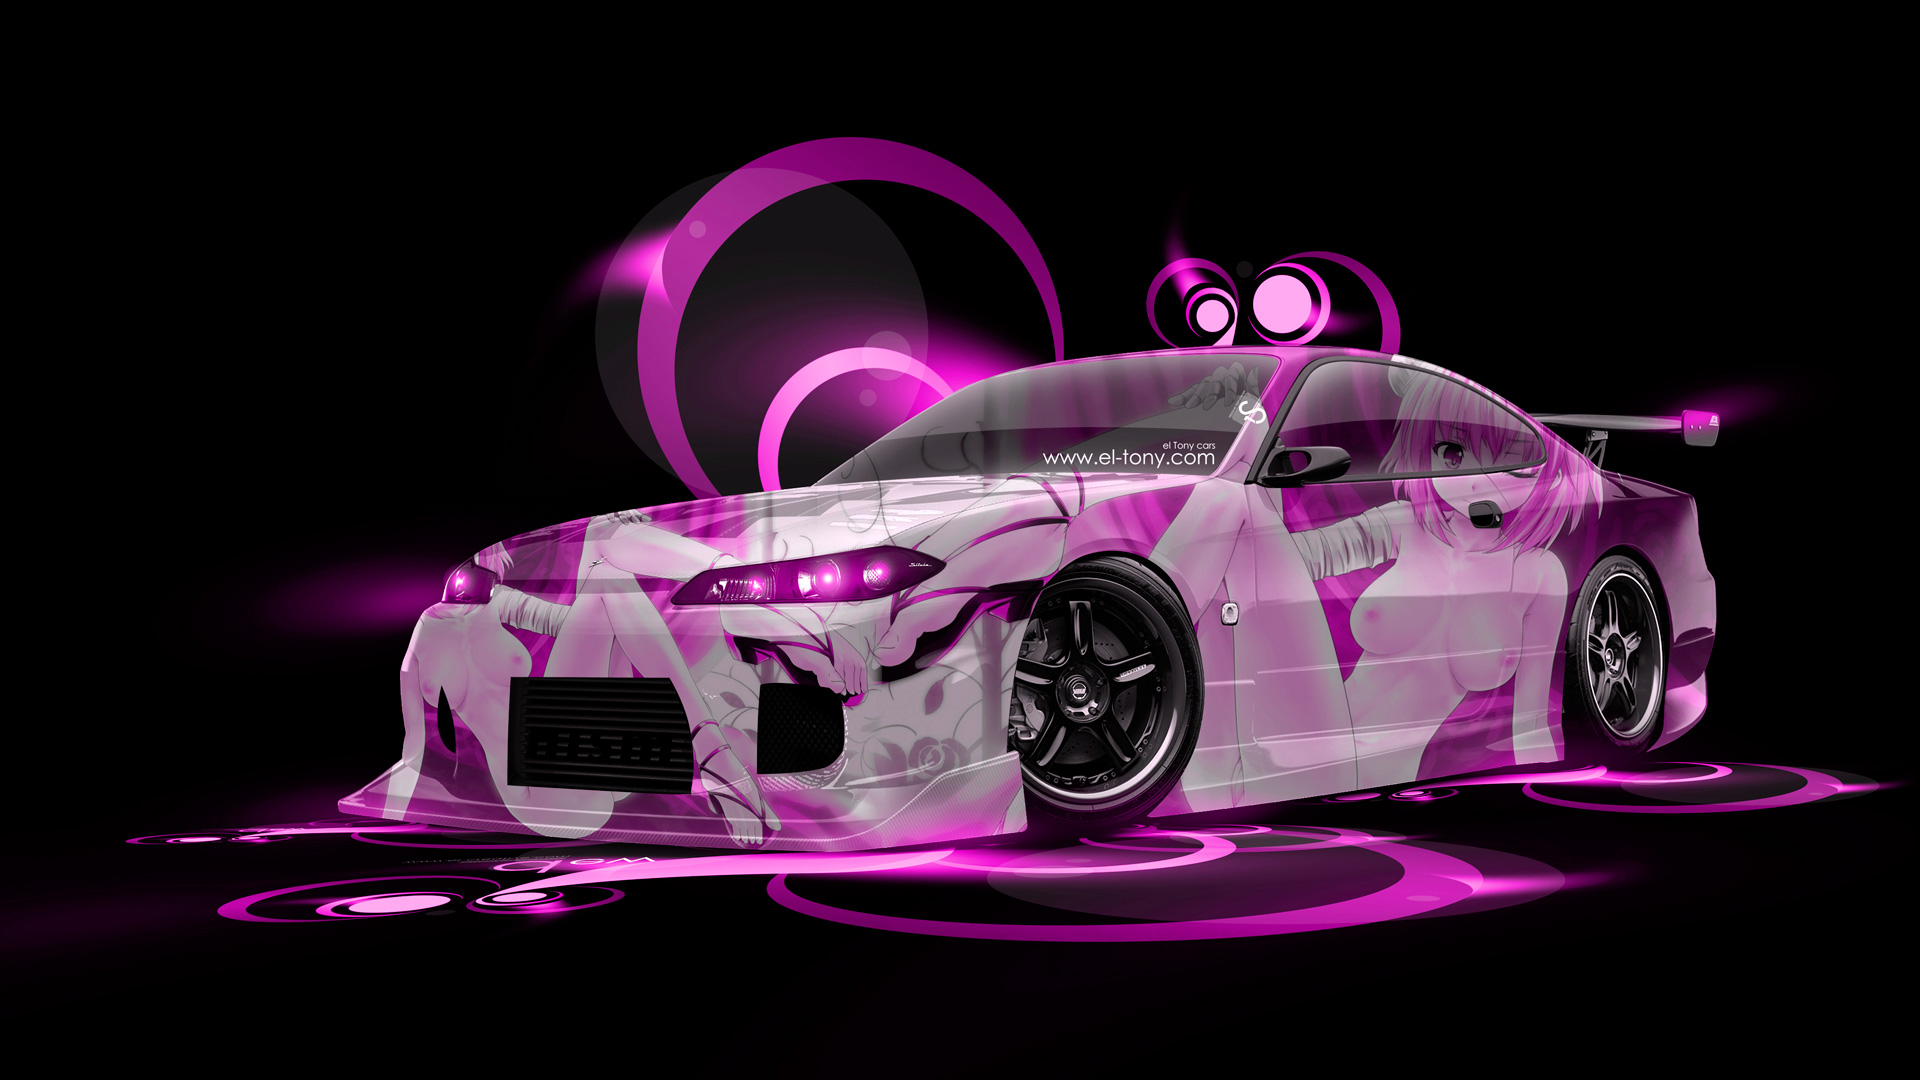 Ordinaire Nissan Silvia S15 JDM Anime Aerography Car 2014